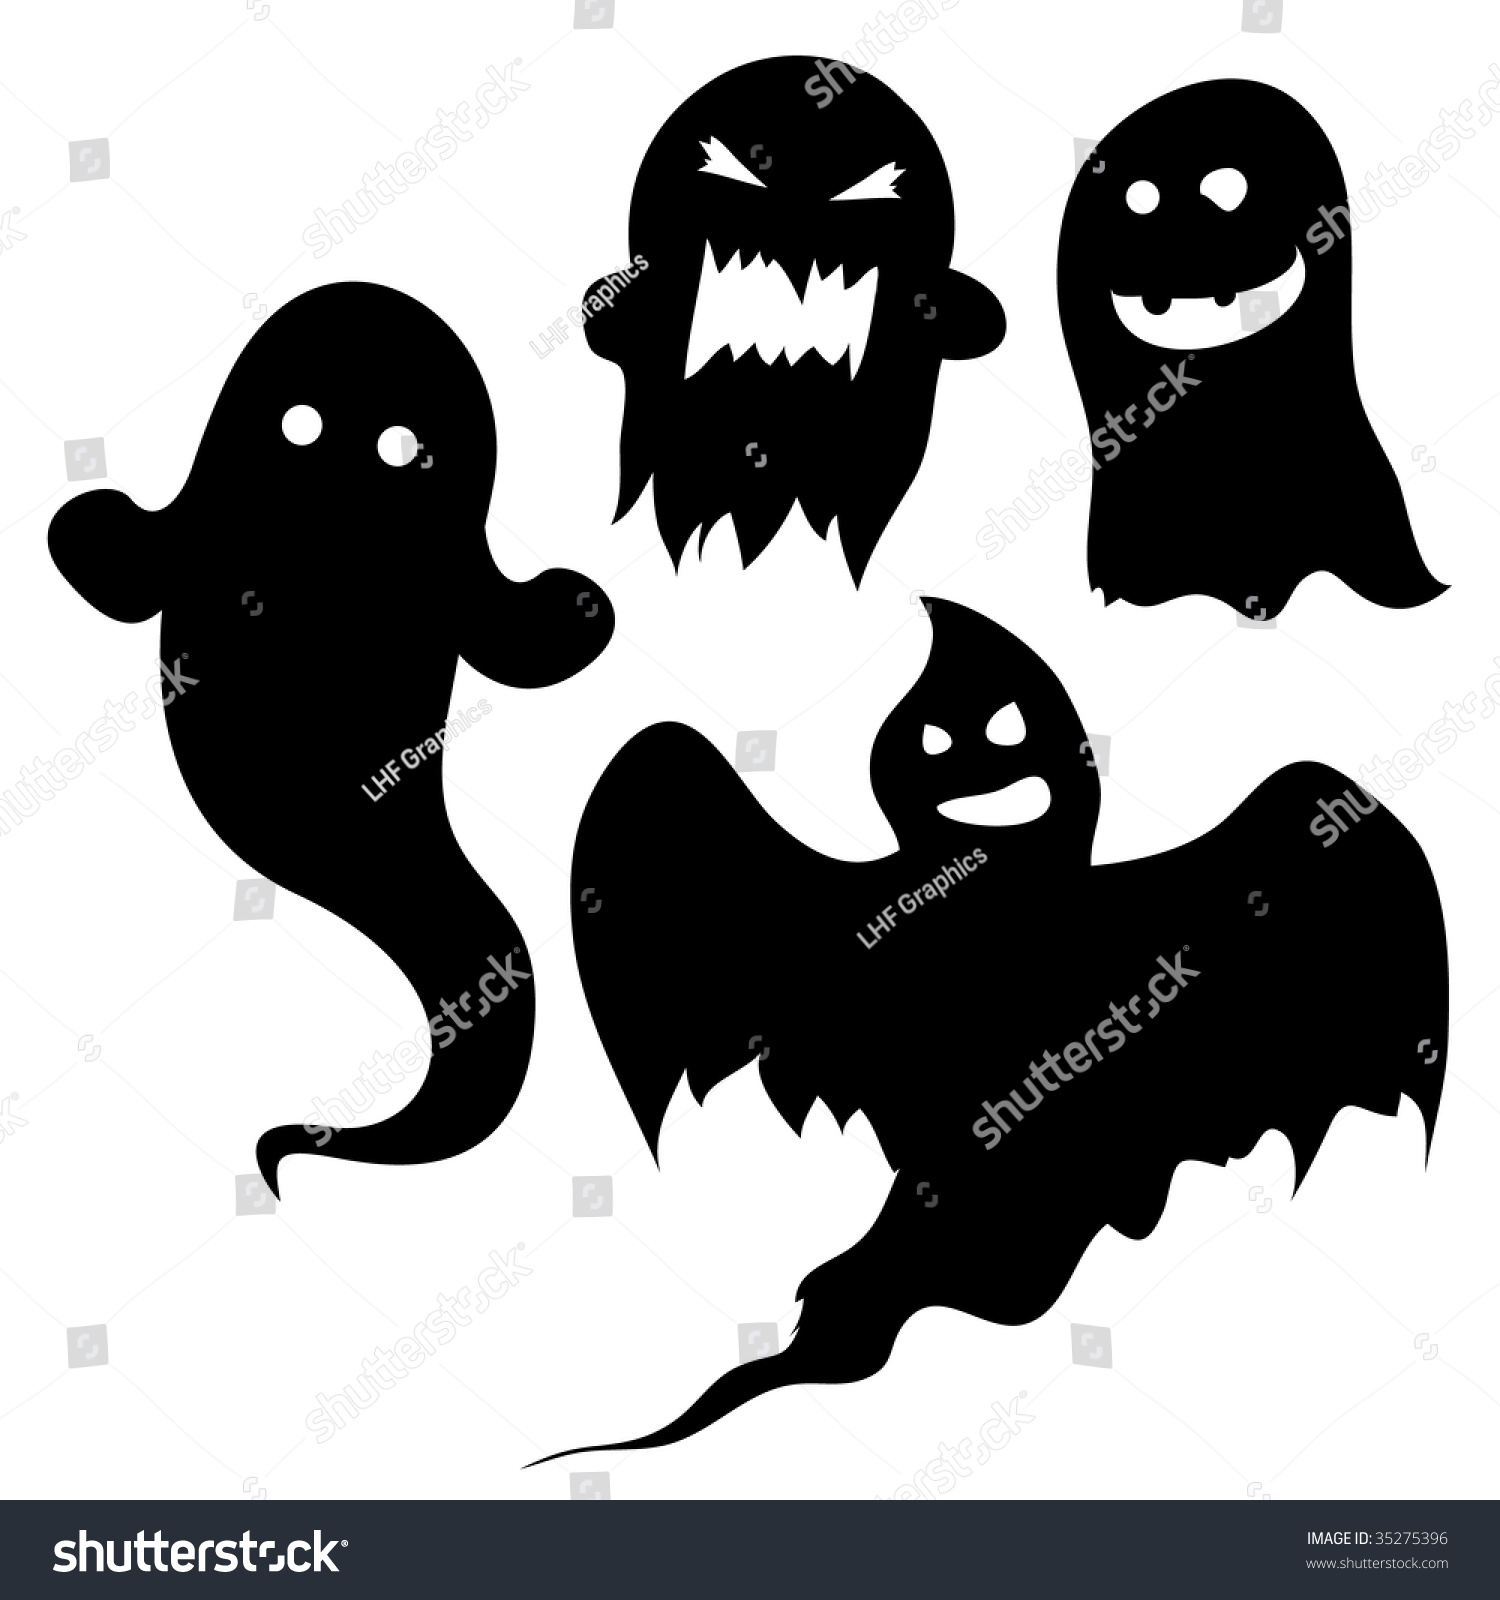 Set Ghost Silhouettes Halloween Spooky Designs Stock Vector ...